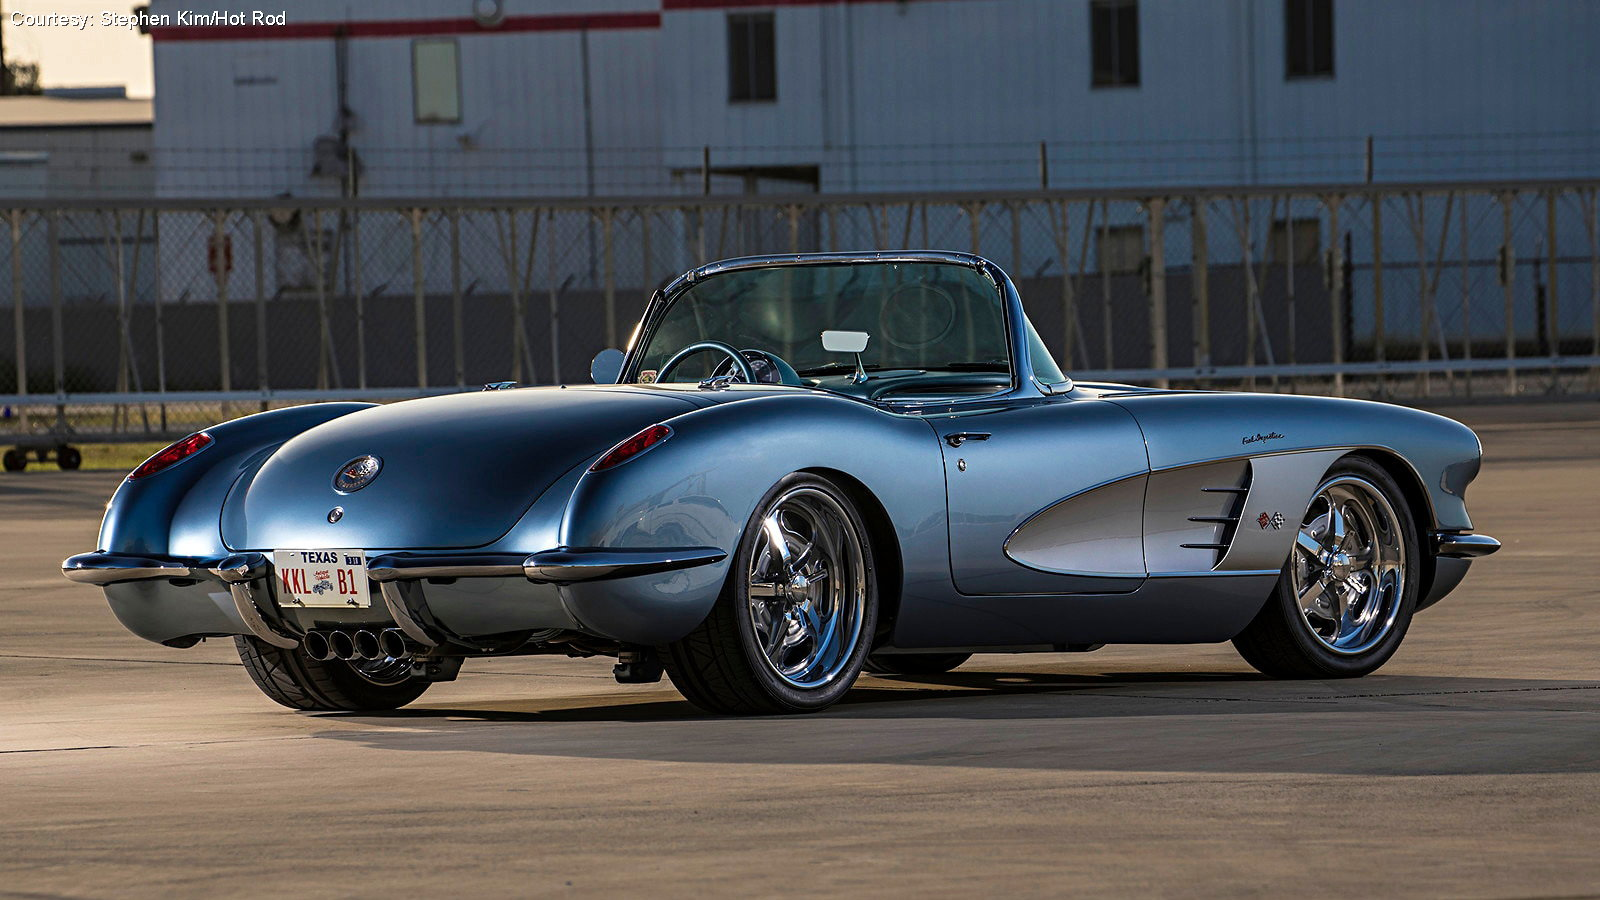 LS Swapped 1959 Corvette